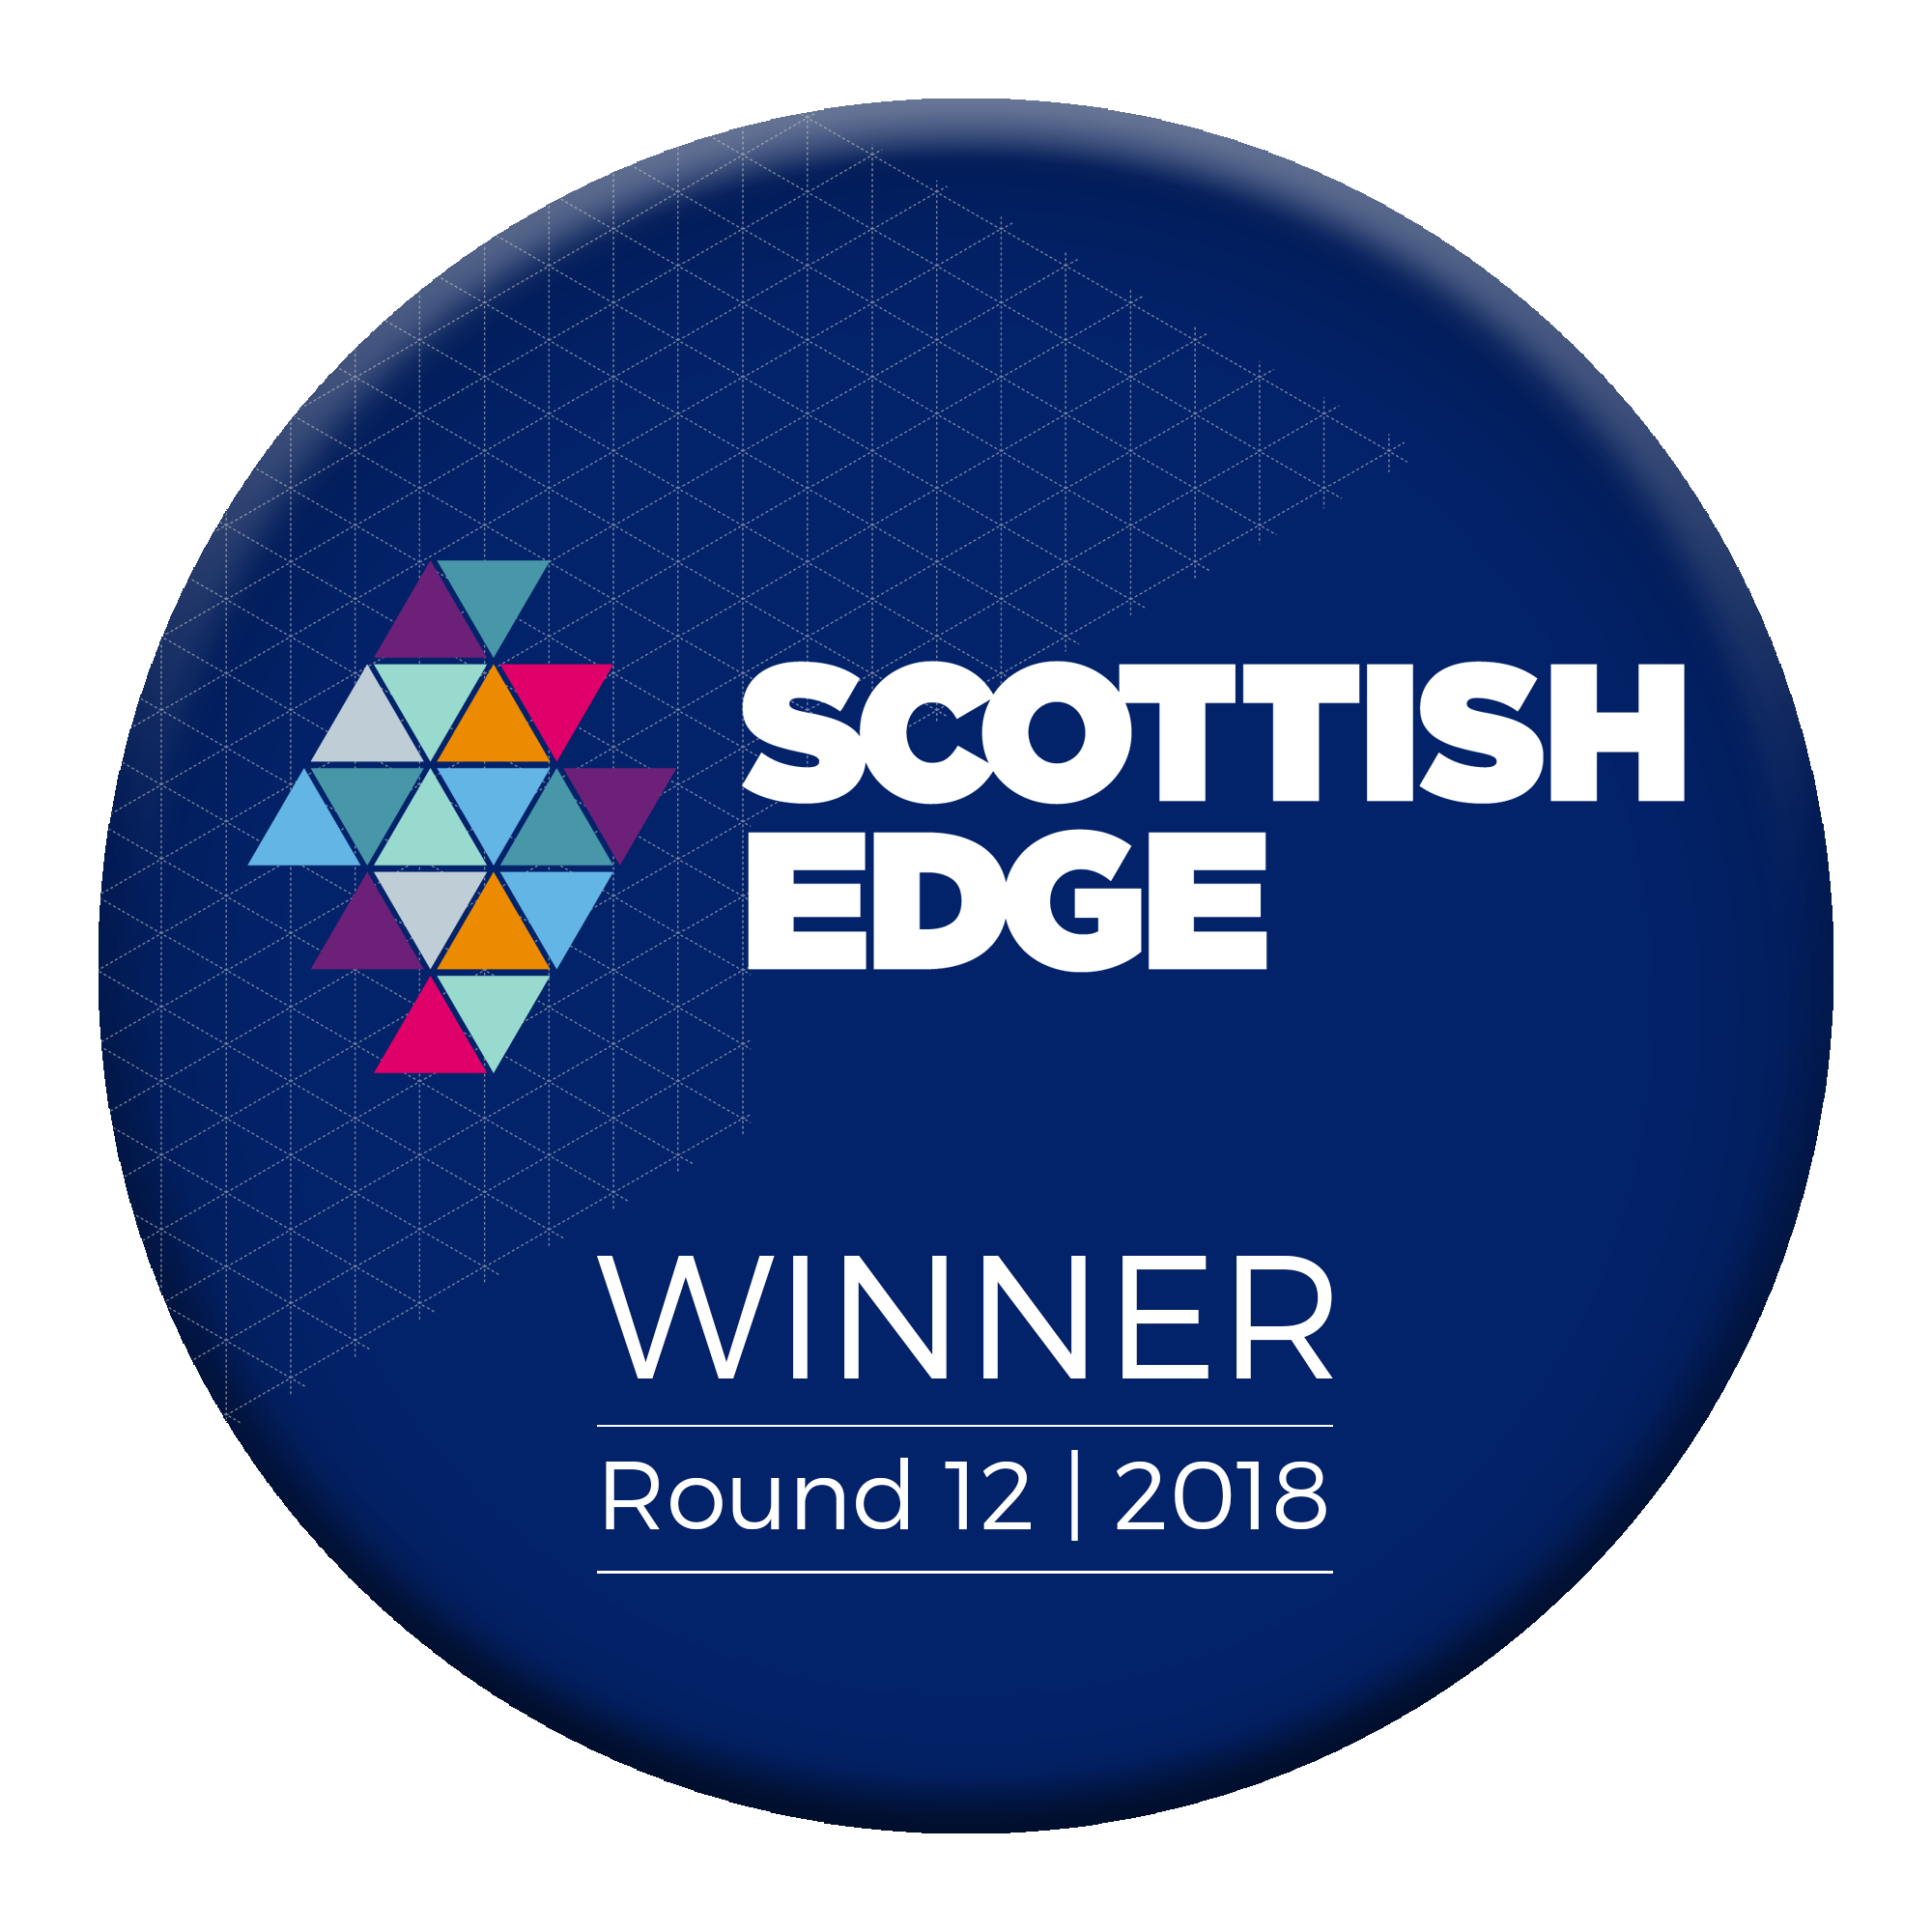 scottish-edge-winner-badge